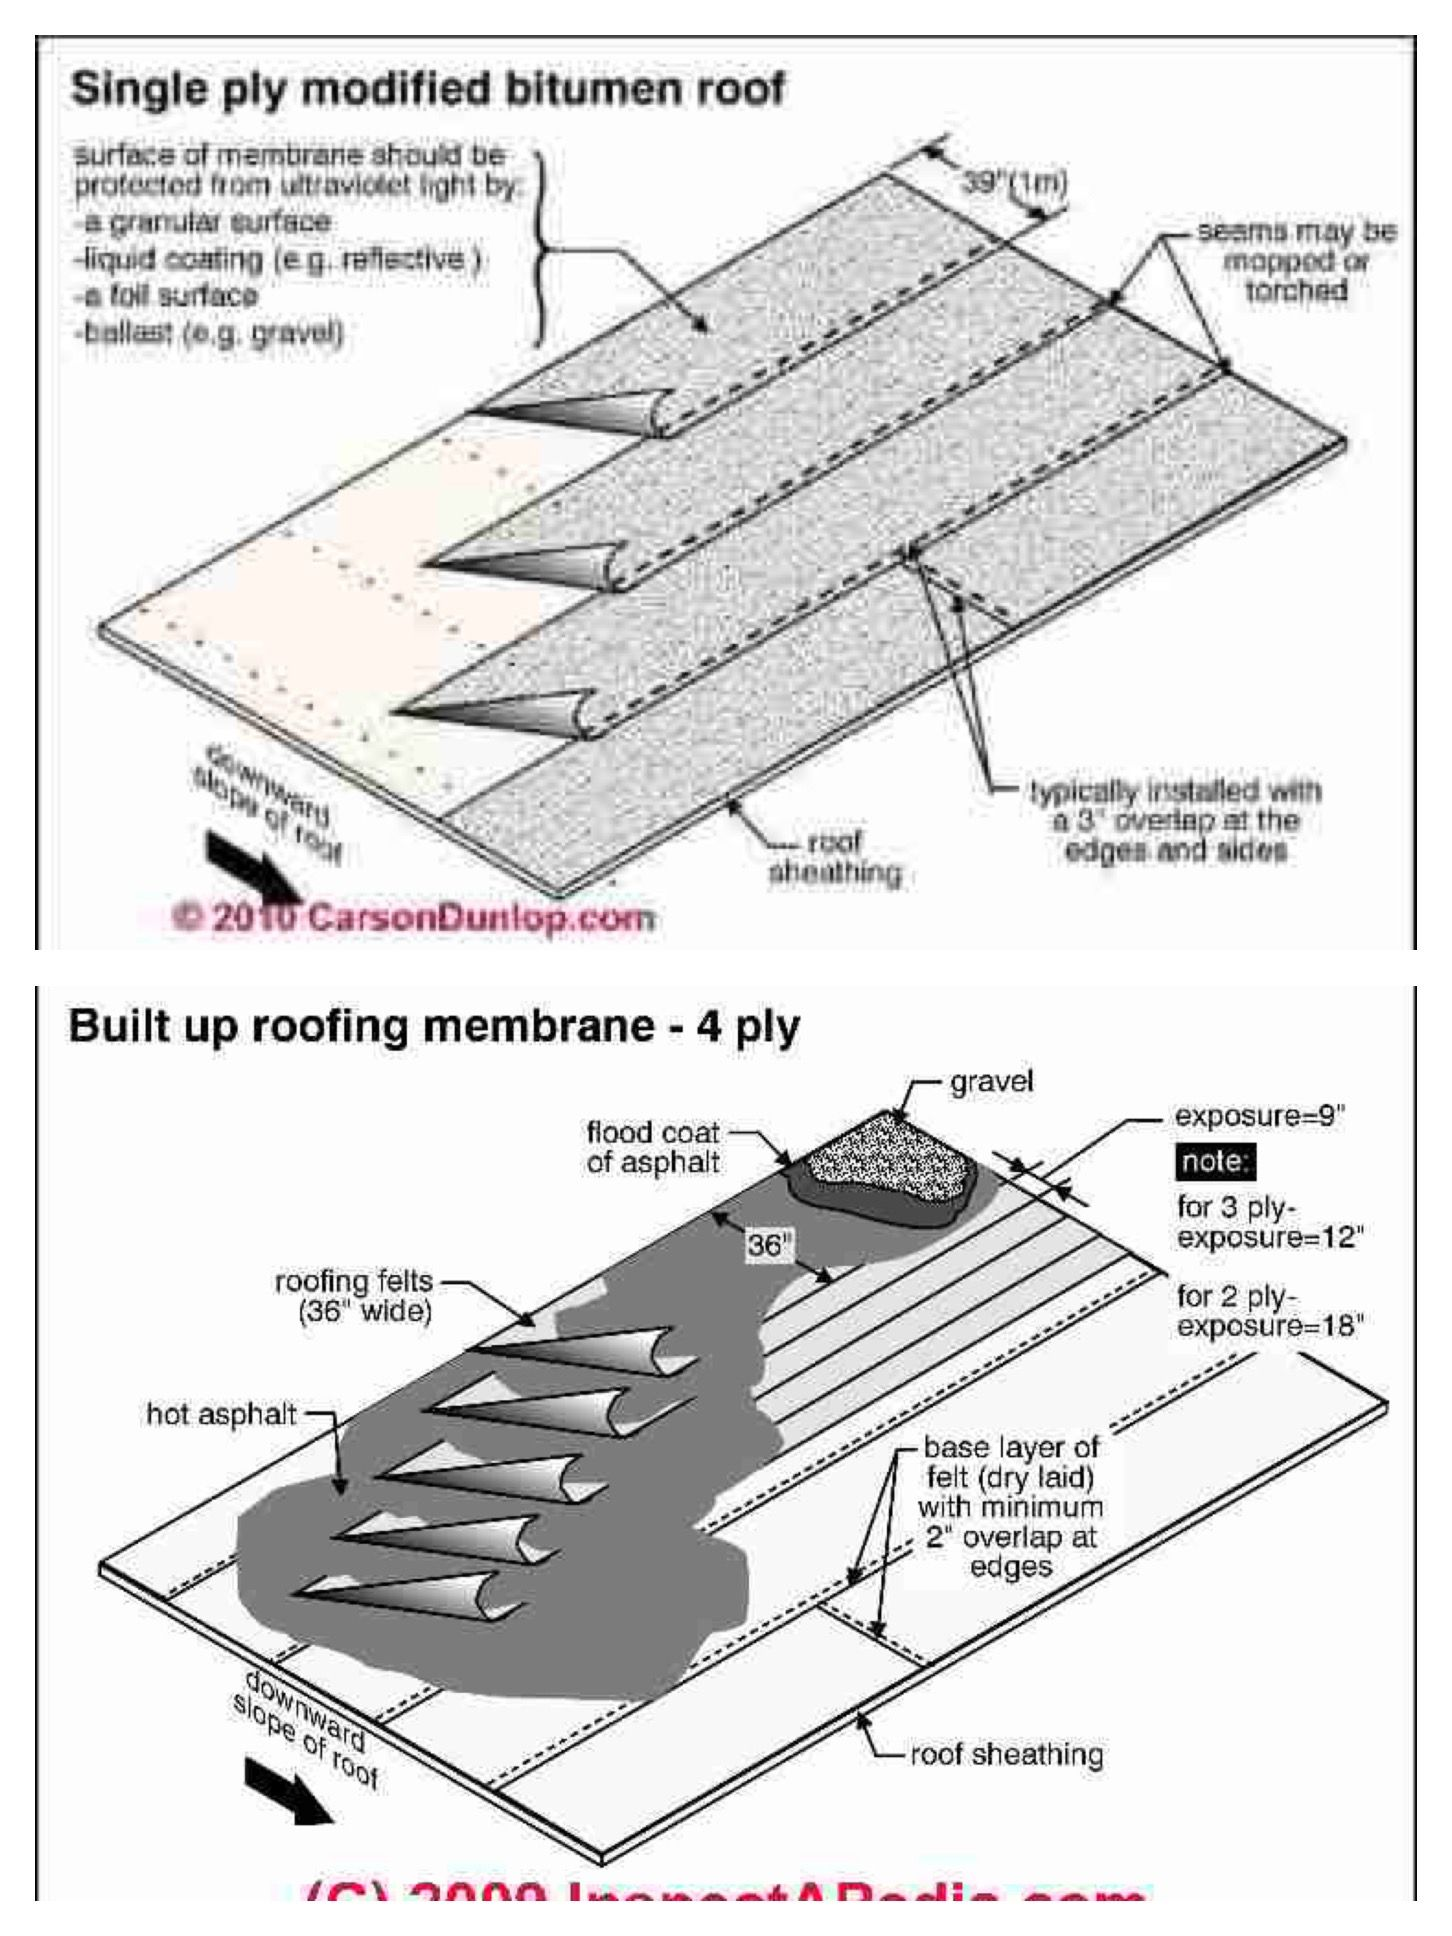 Single Ply Vs Built Up Roof Built Up Roofing Refers To Any Roofing System That Is Installed In Multiple Layers Using Mansard Roof Bitumen Roof Roof Detail